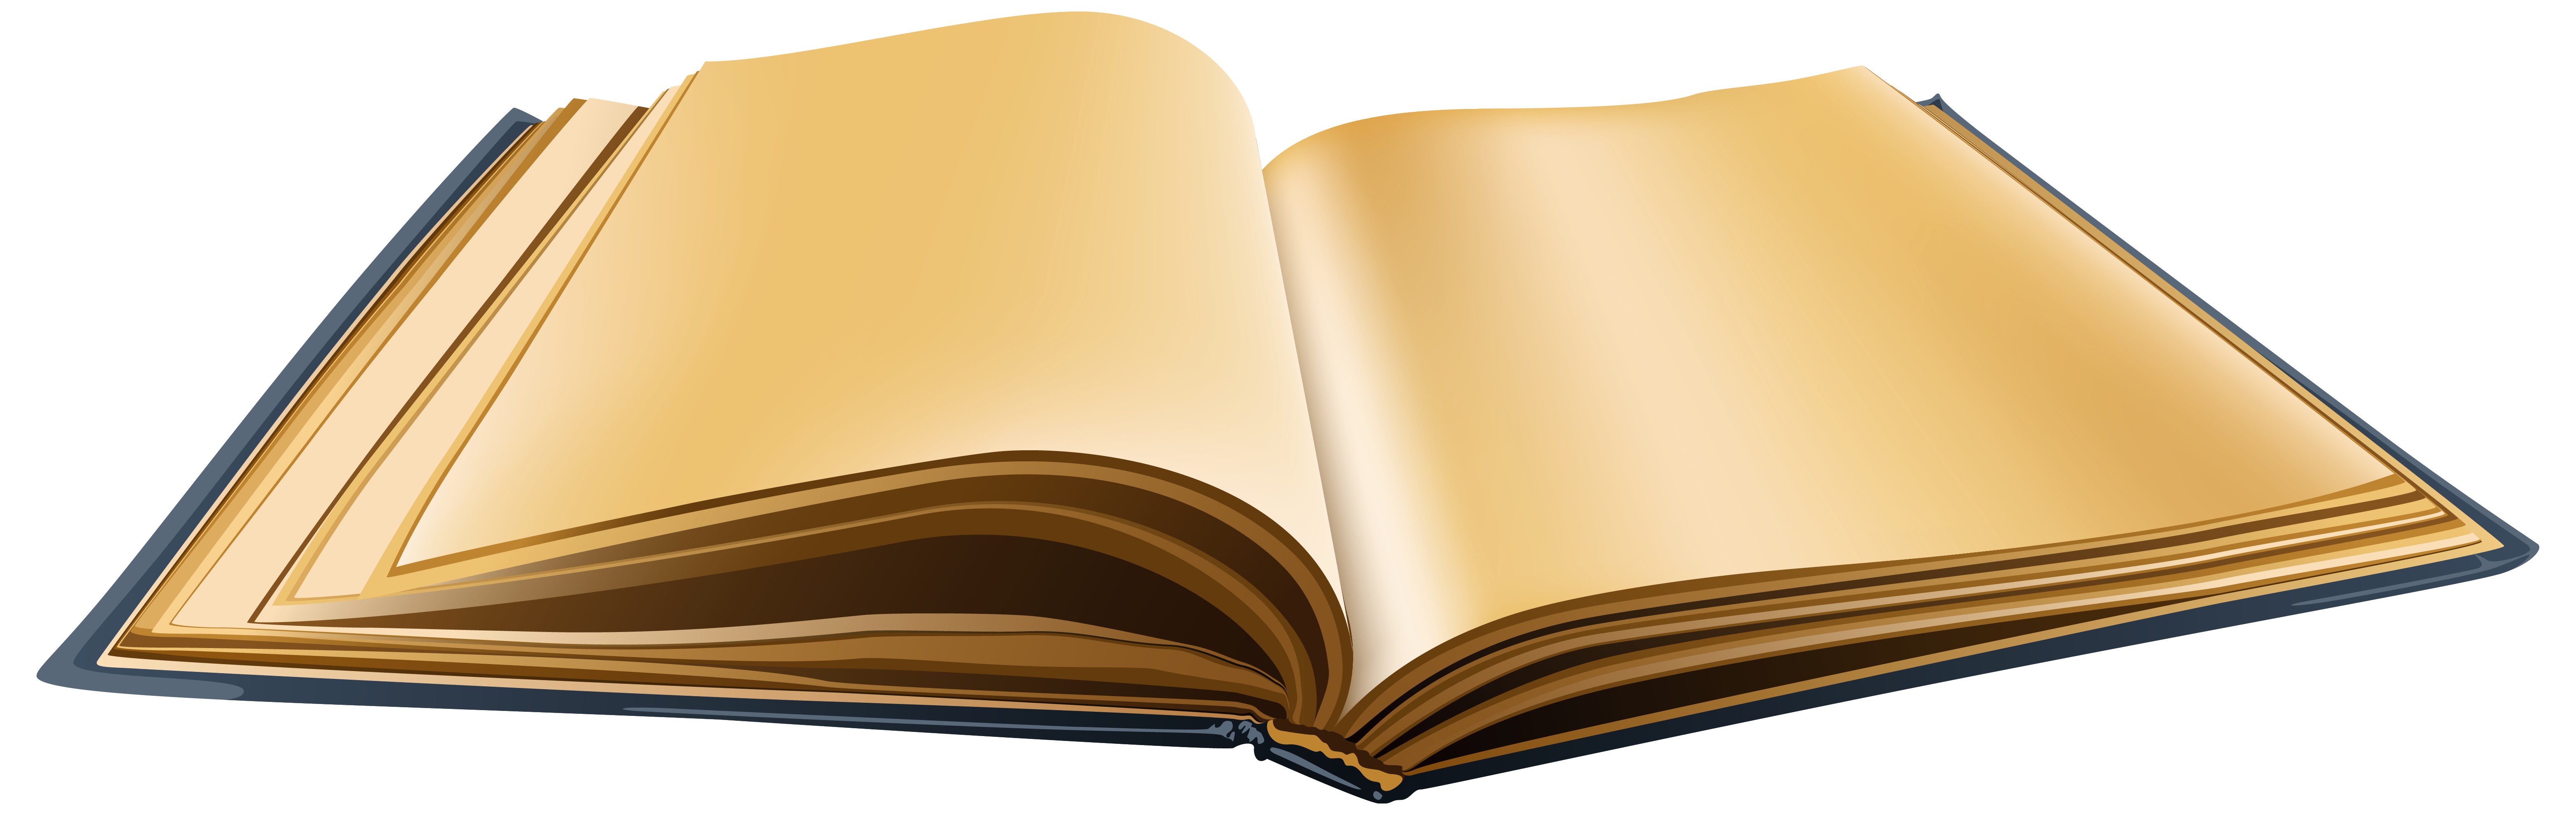 Old book png. Clipart best web